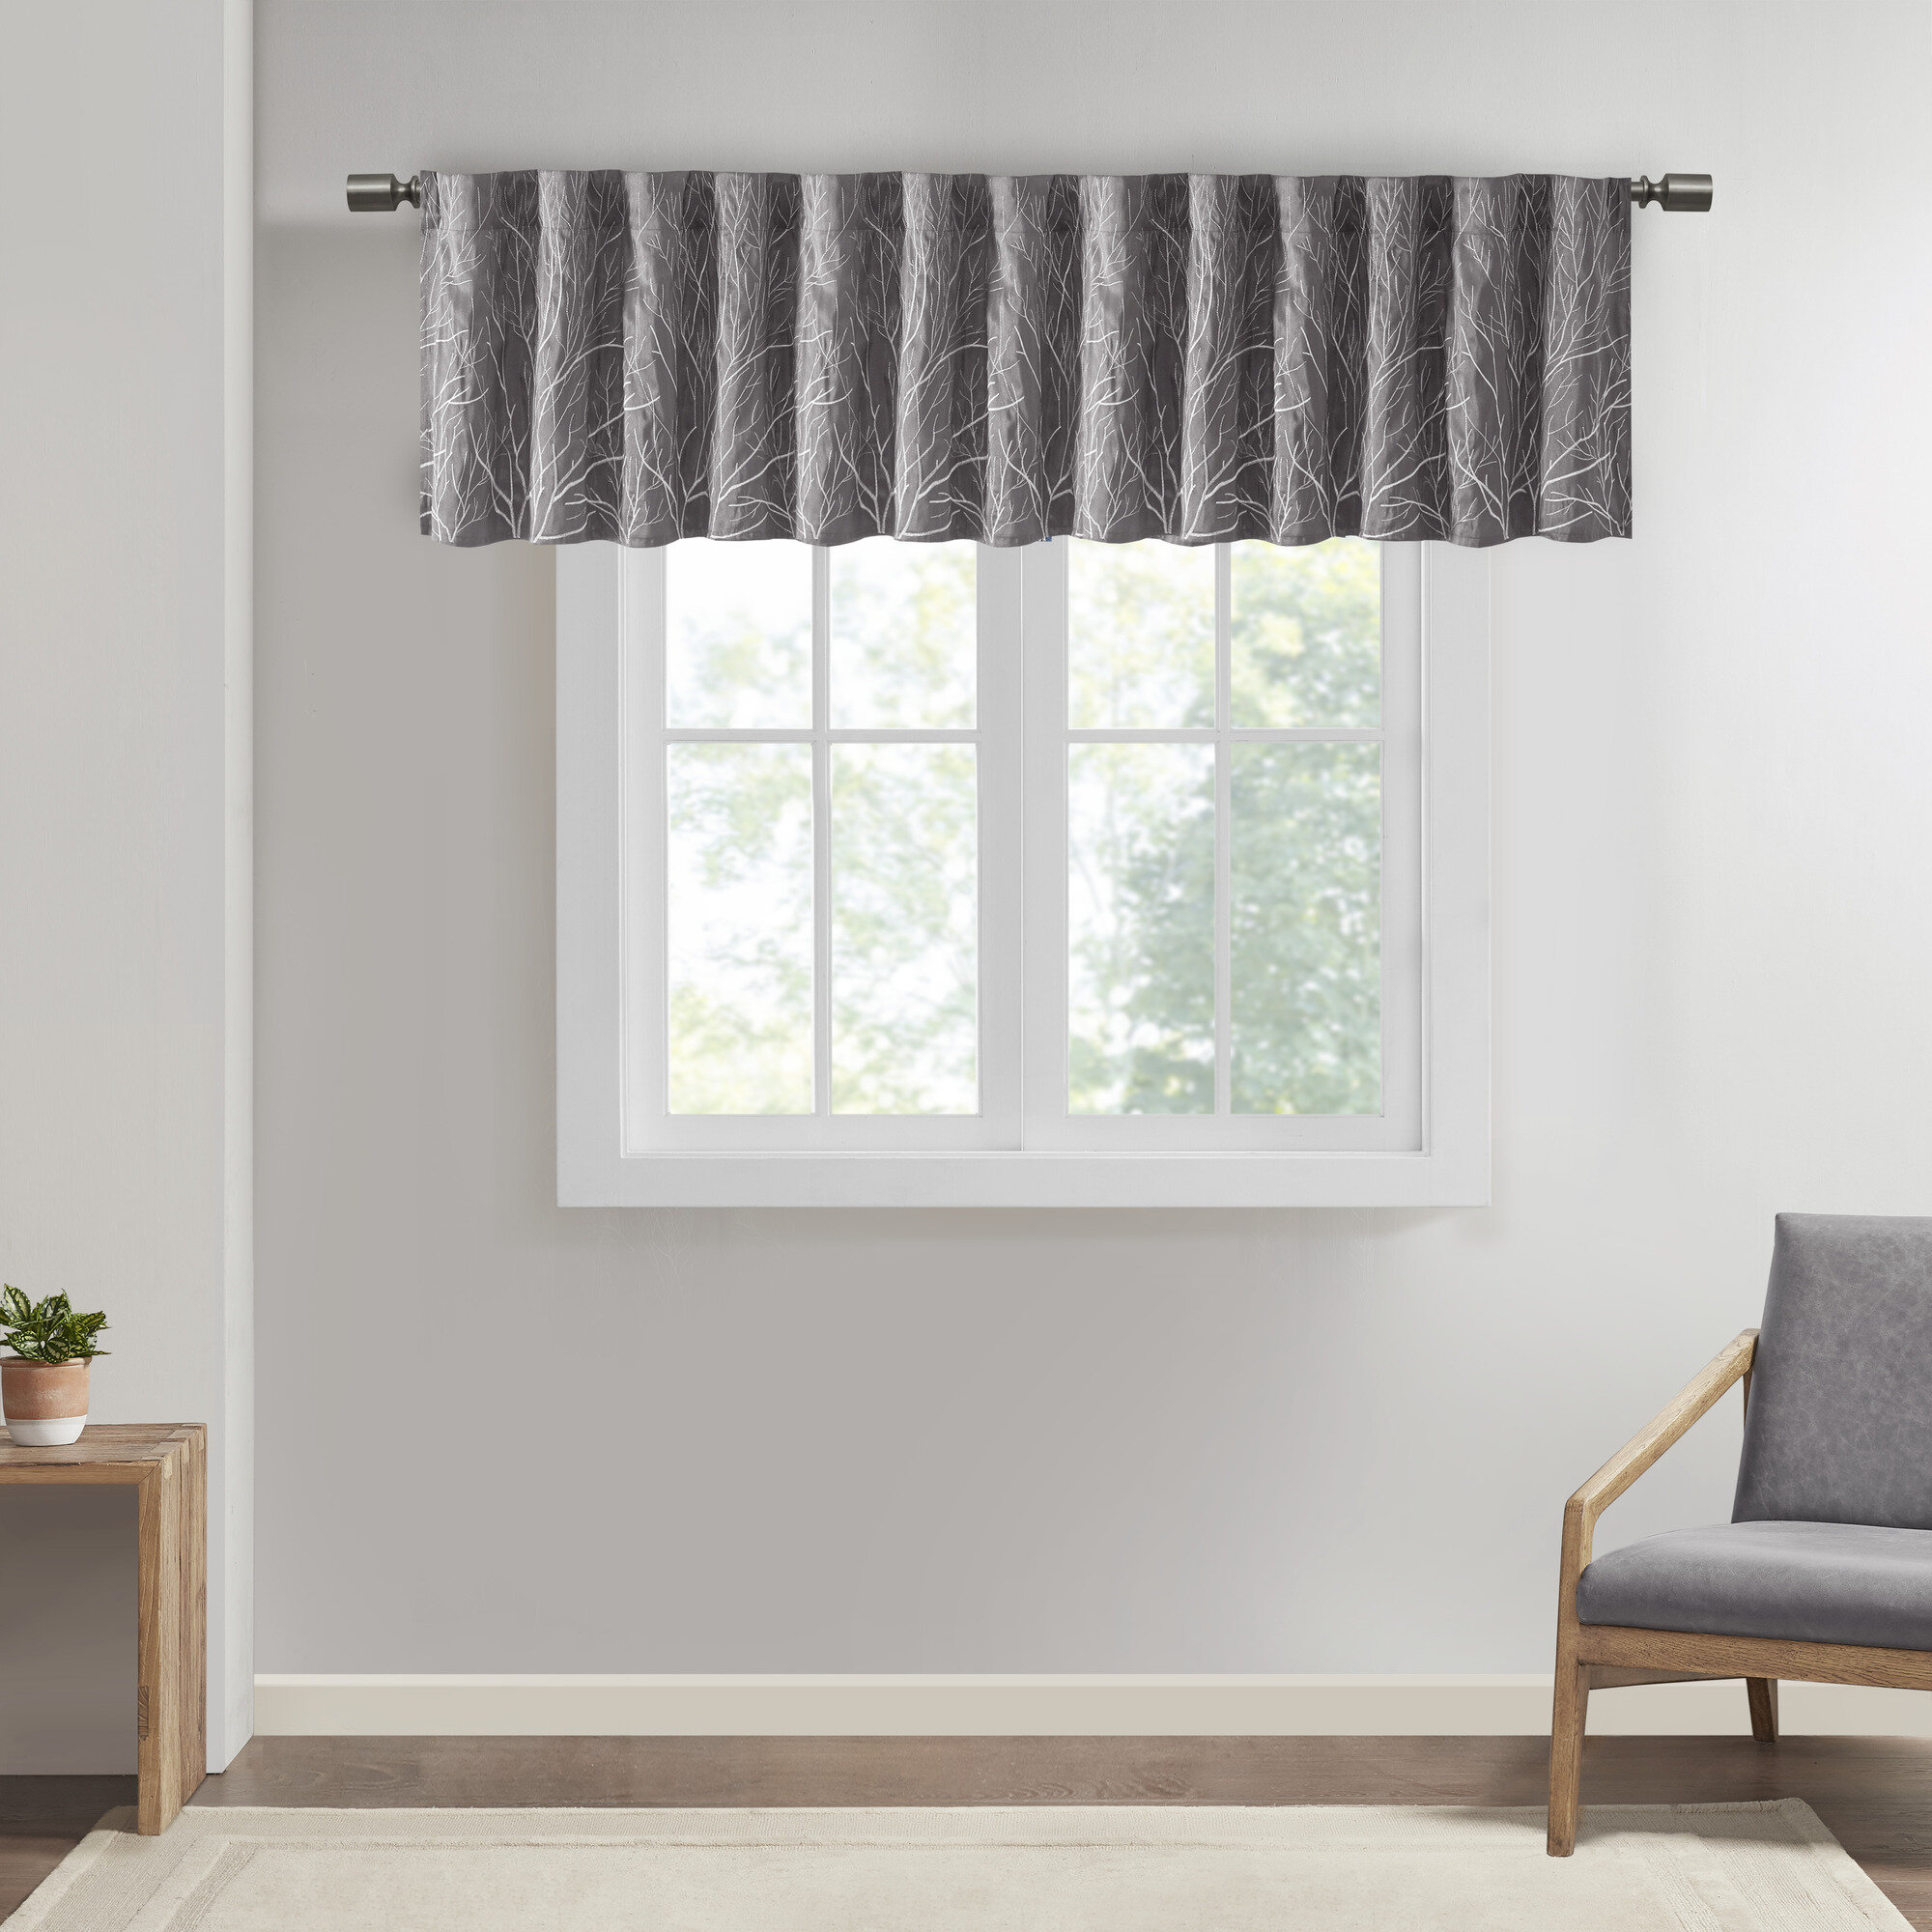 Gray Silver Valances Kitchen Curtains Free Shipping Over 35 Wayfair